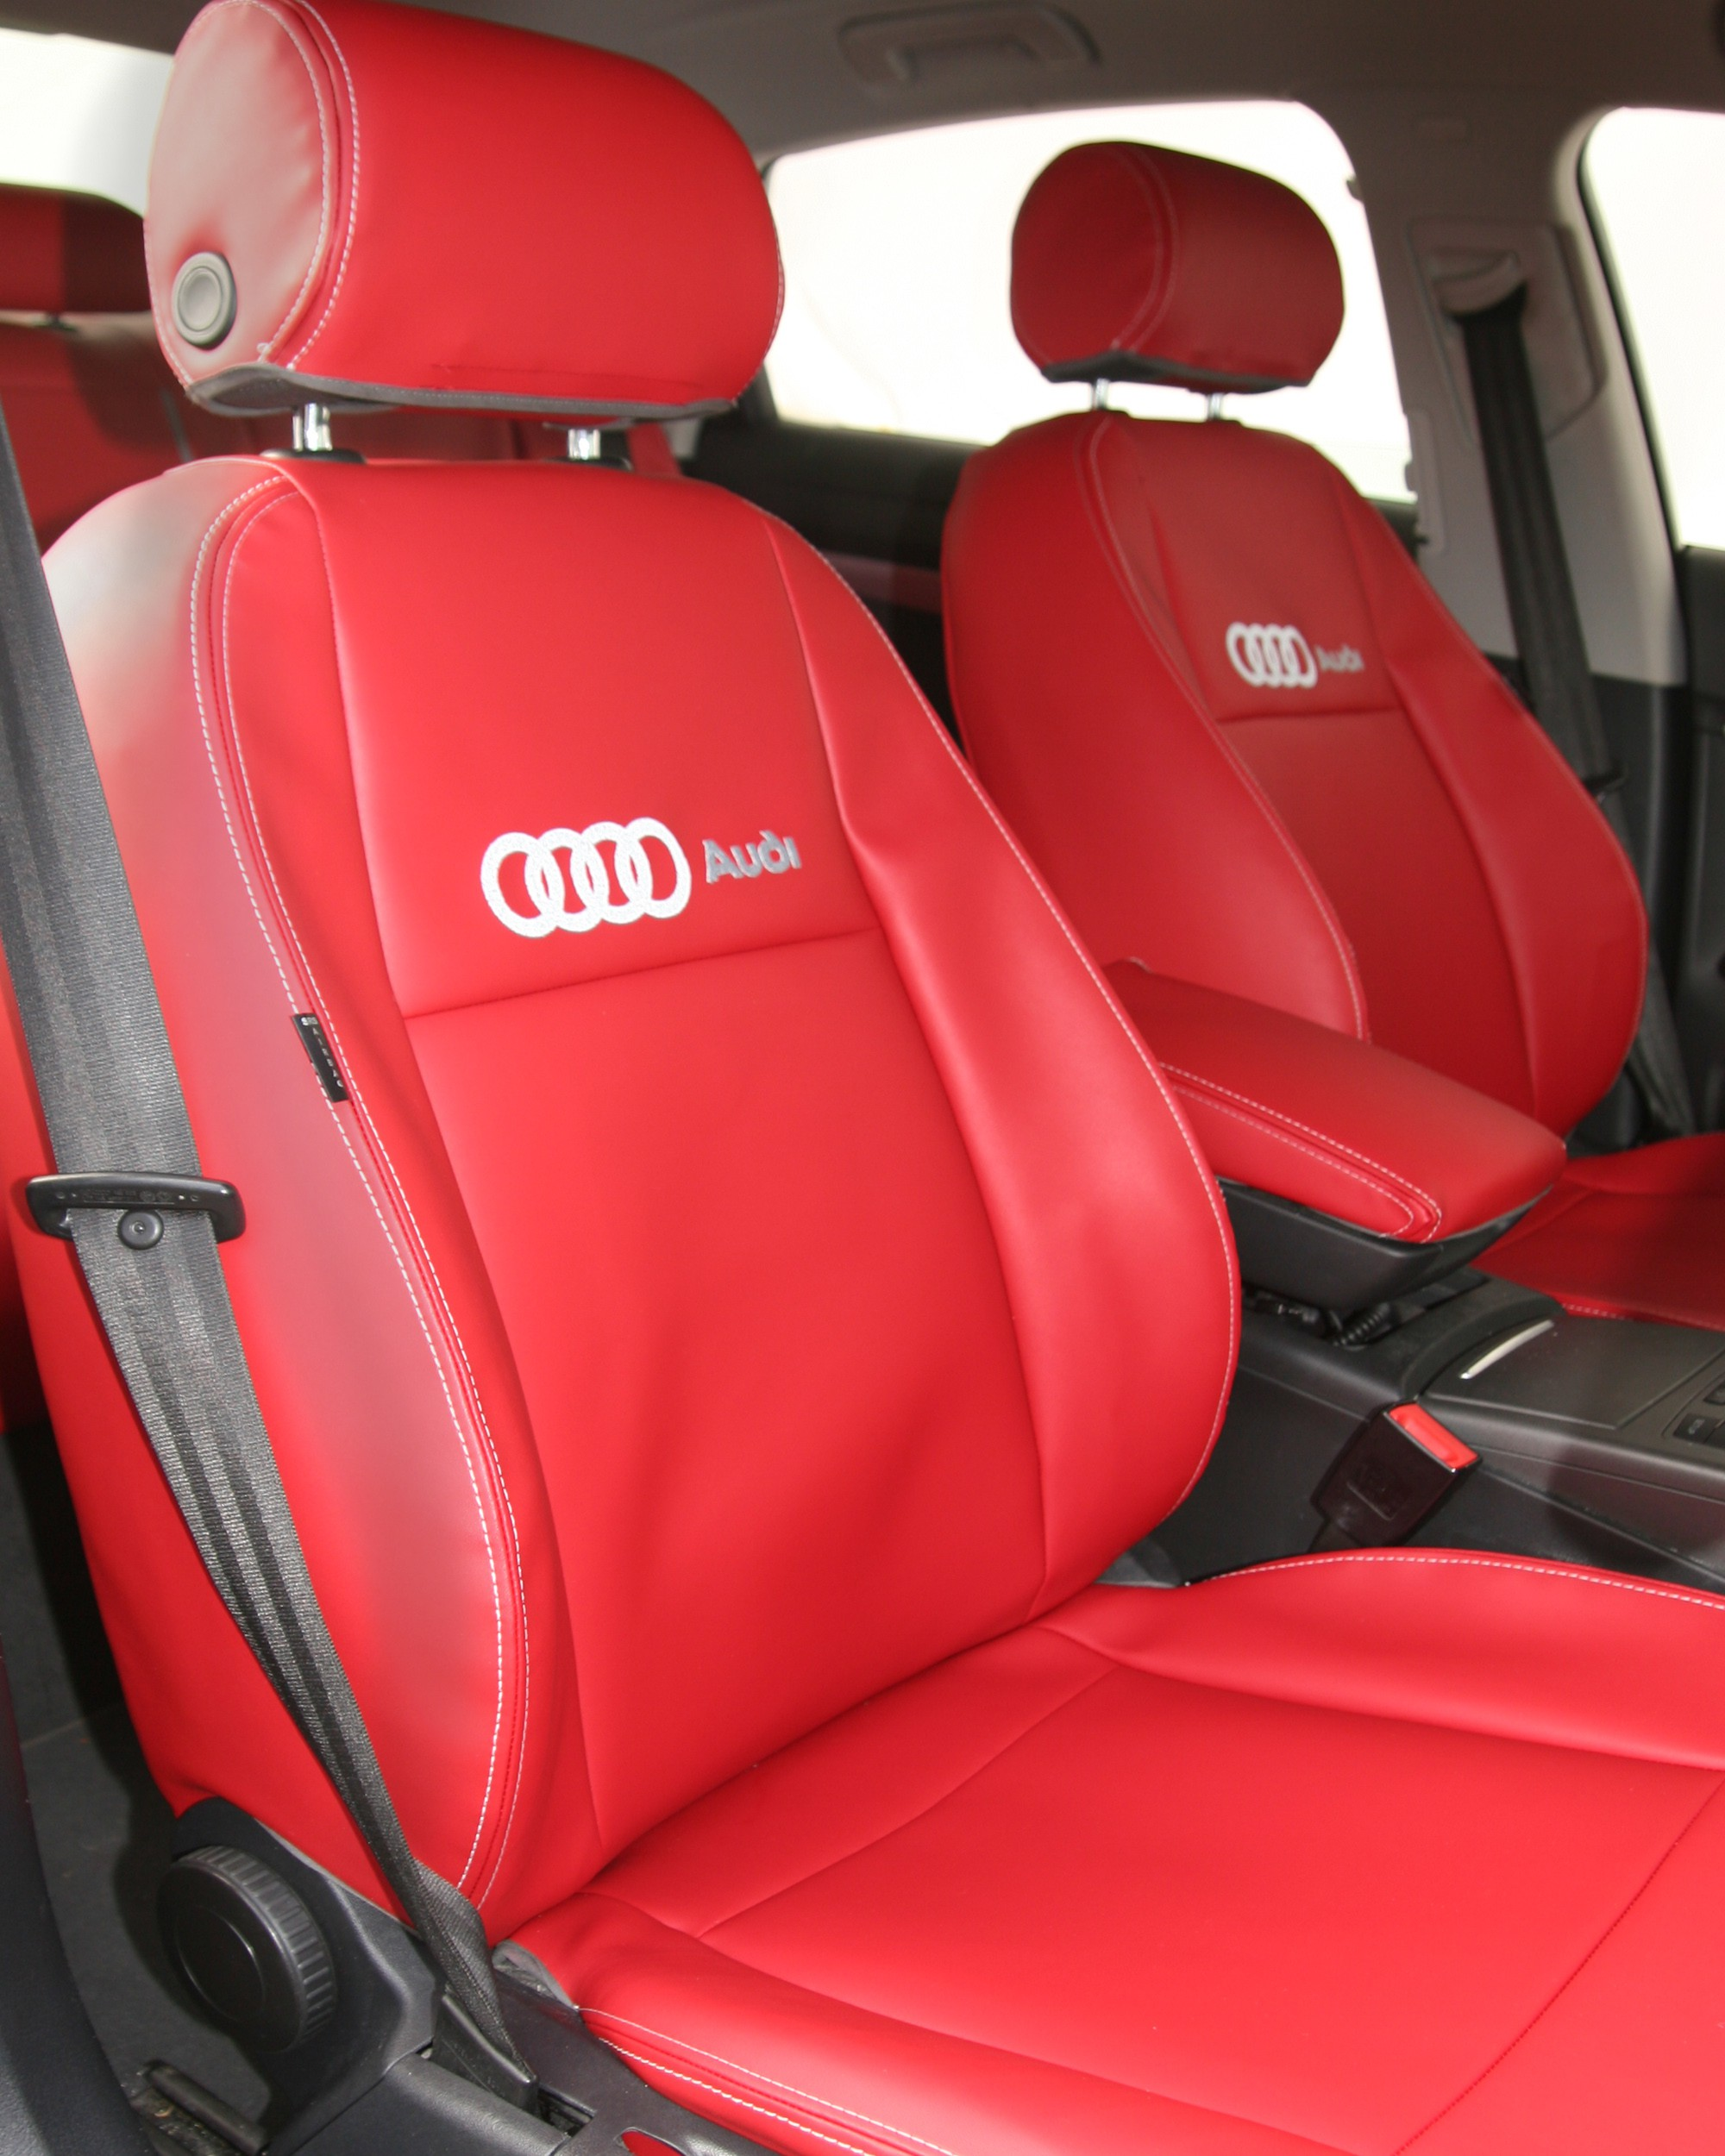 Audi A6 Red Car Seat Covers